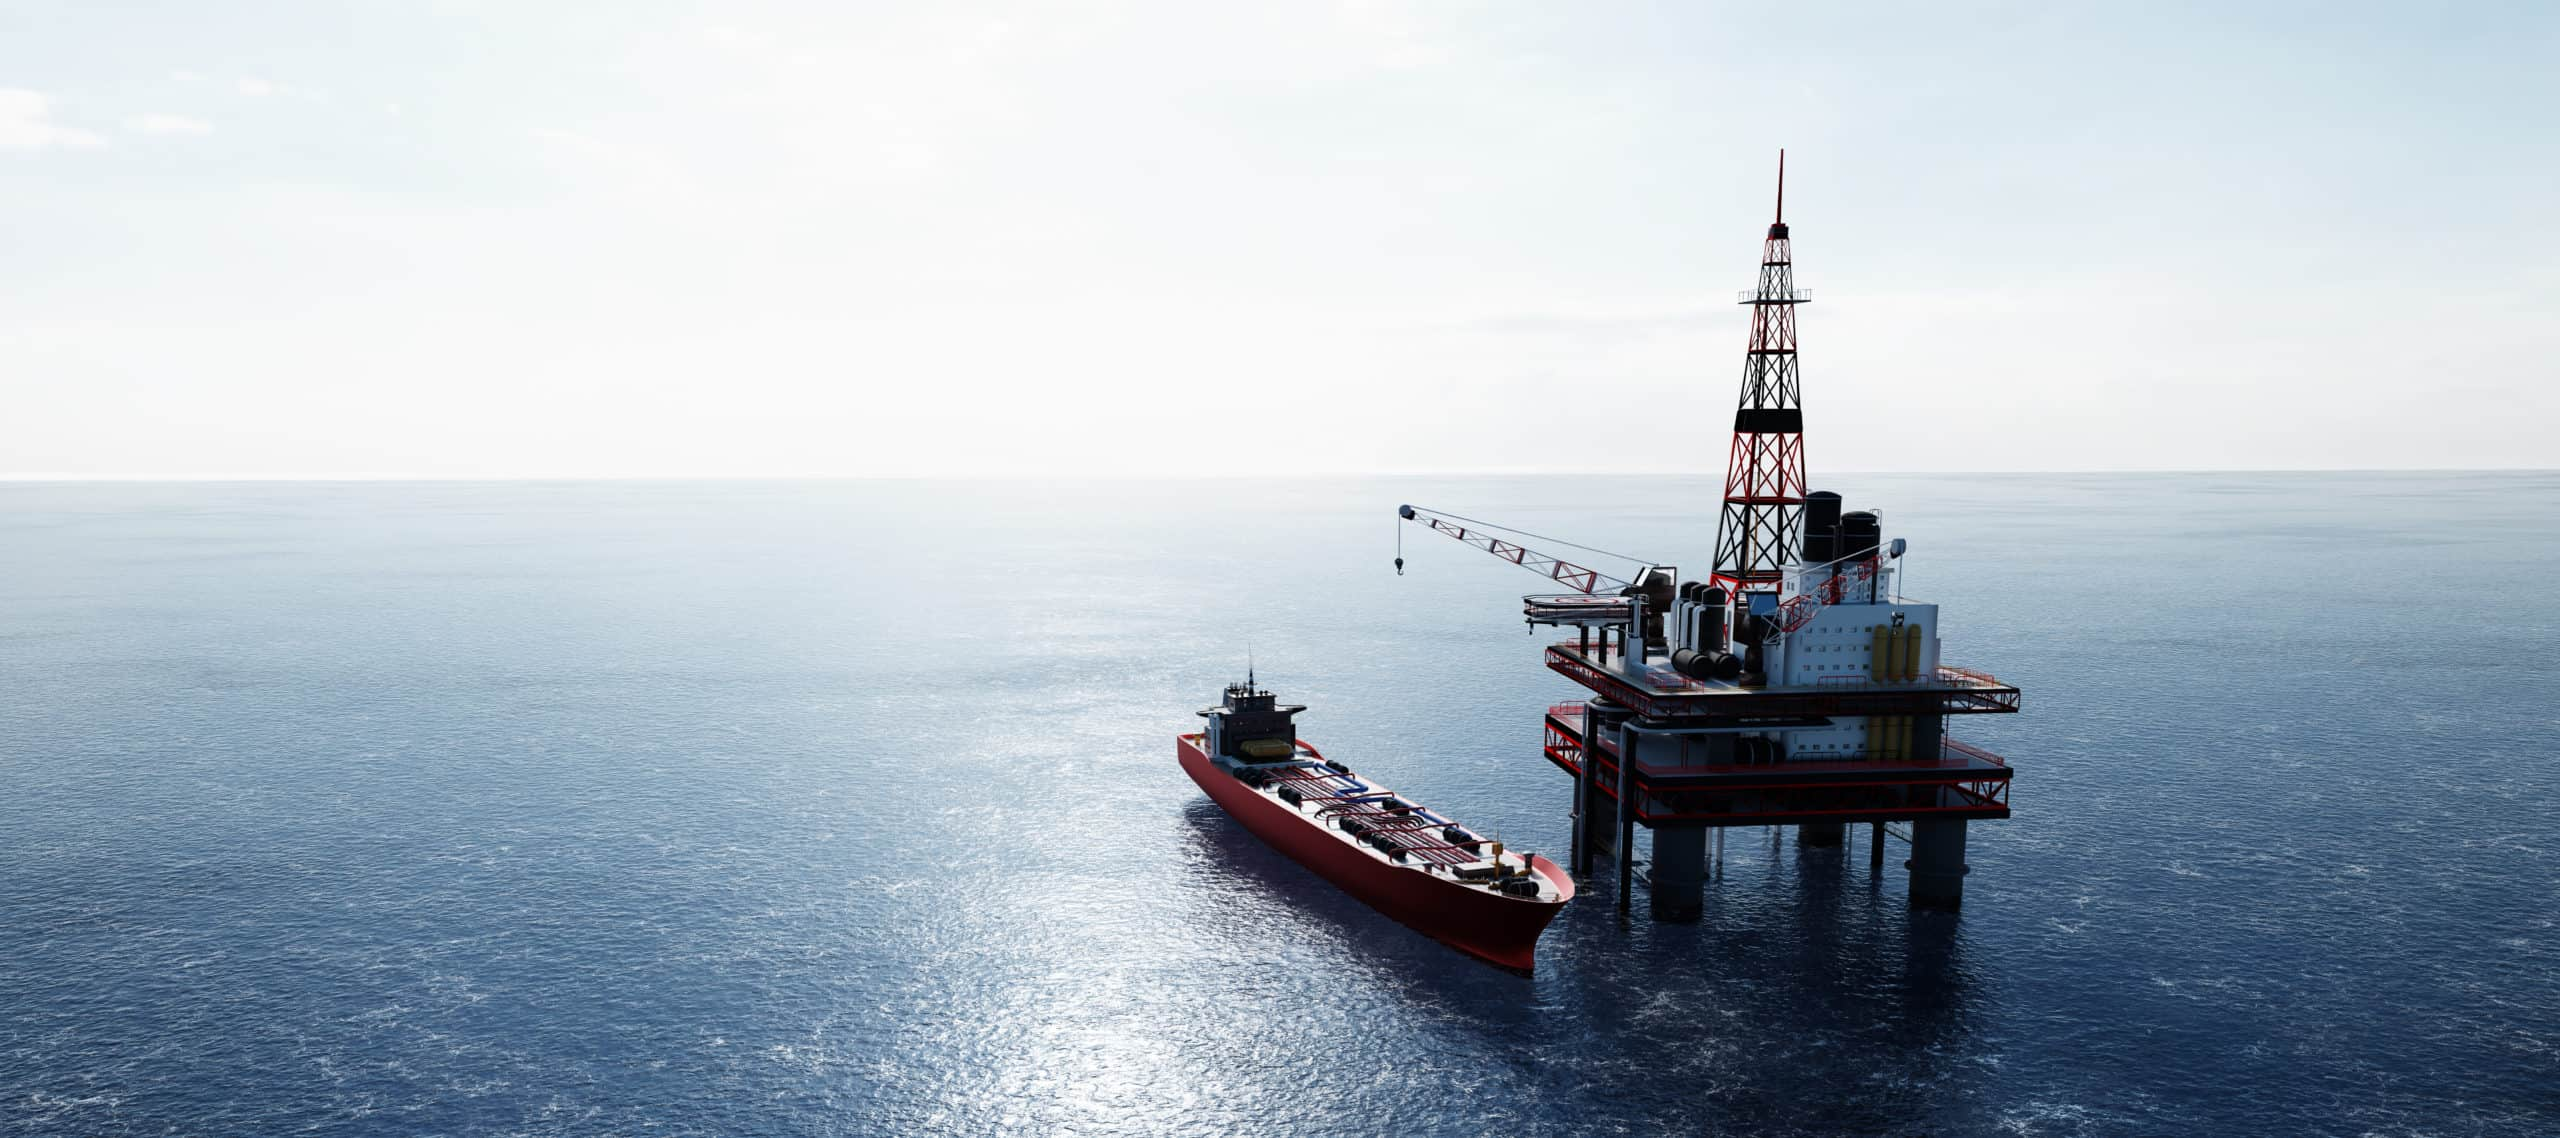 RS Clare Valve Lubricant 601 Improves Valve Performance on 200 Wells across 3 offshore fields